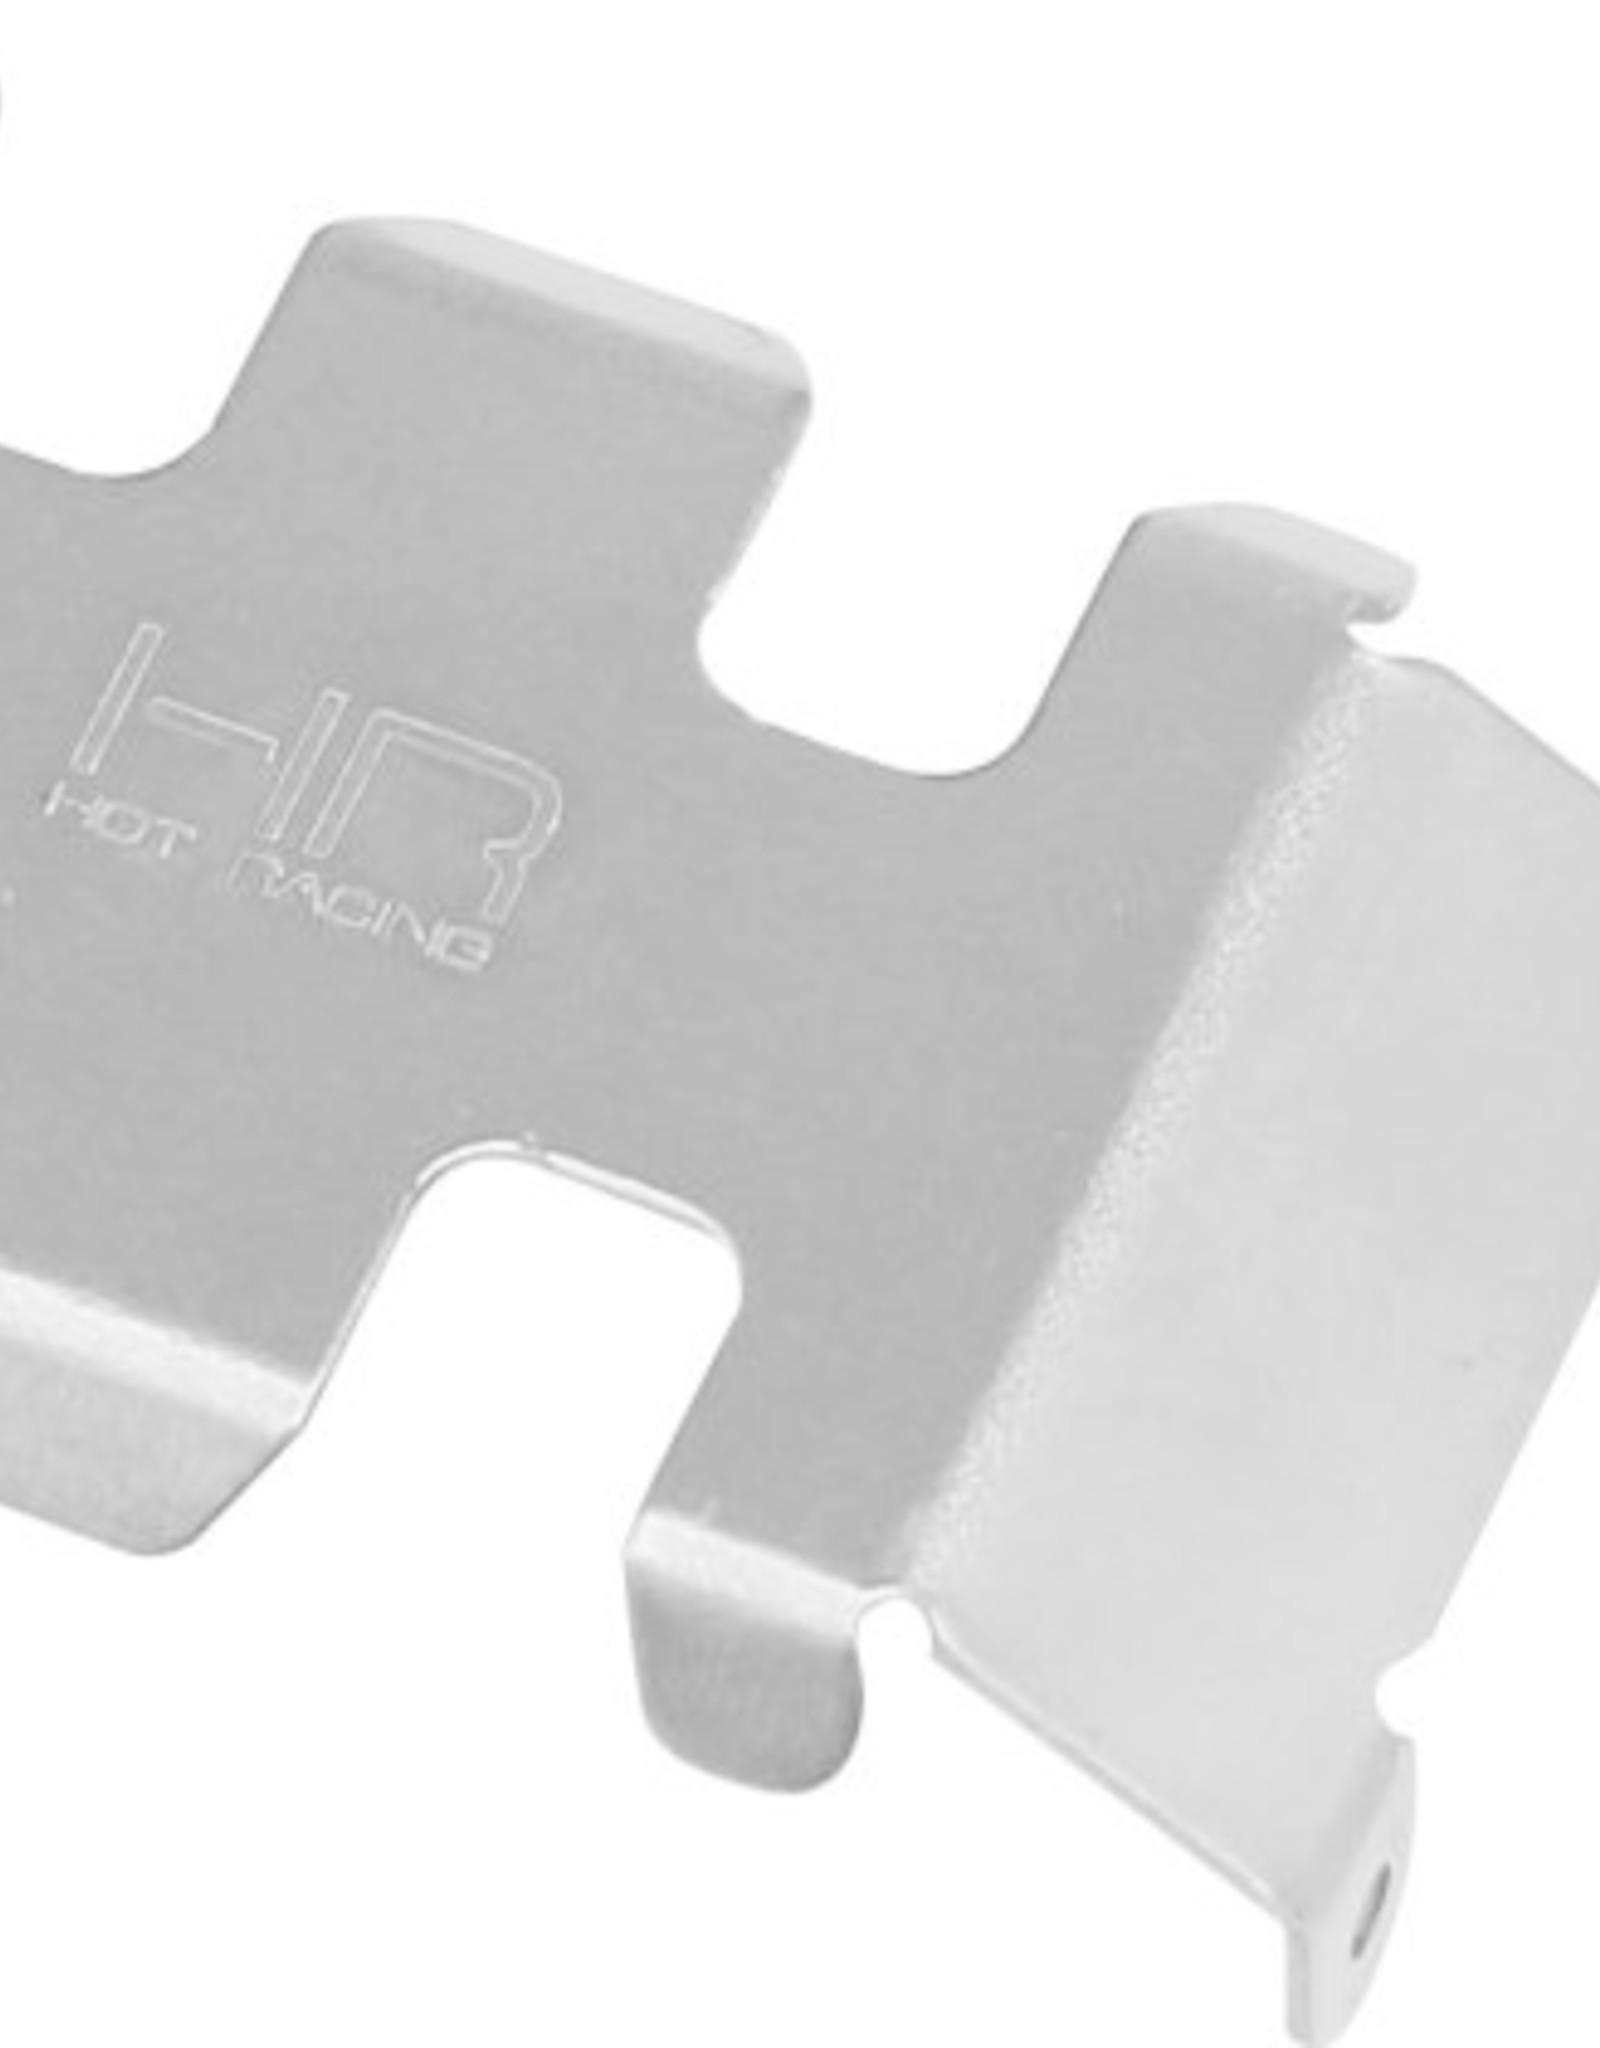 Hot Racing Hot Racing SCX24 Stainless Steel Center Belly Skid Plate SCX24